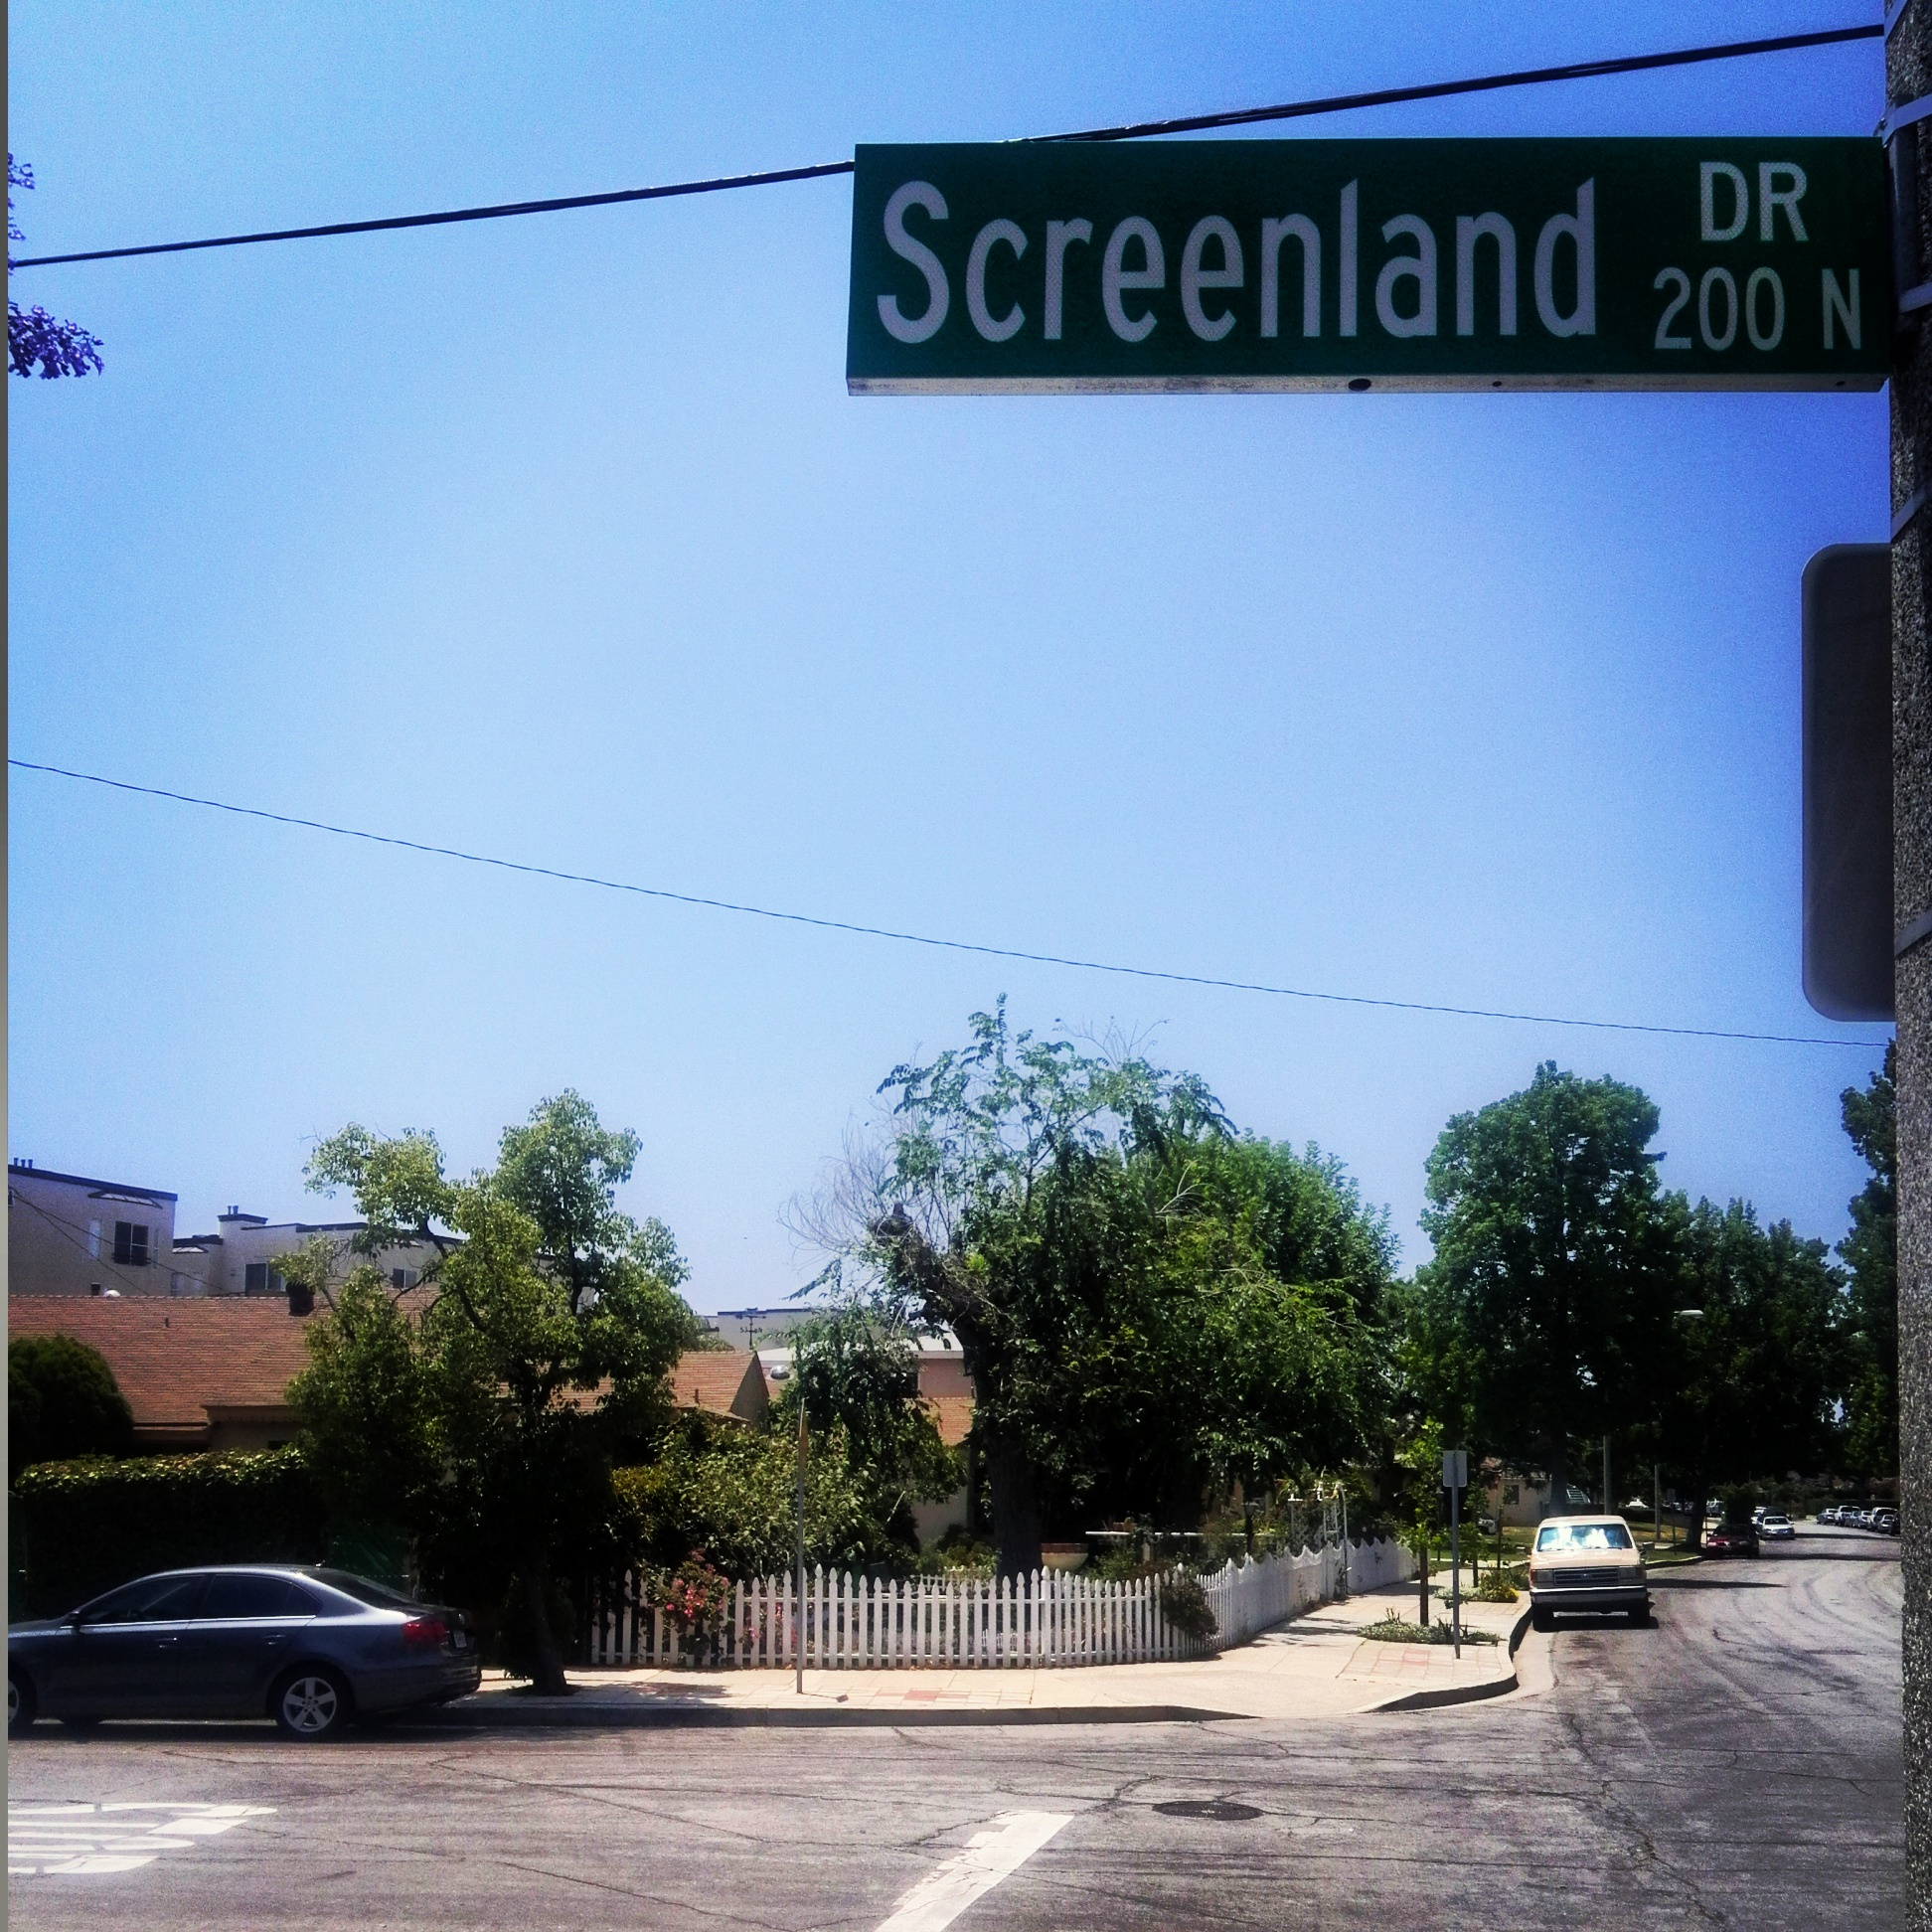 Screenland/Dreamland